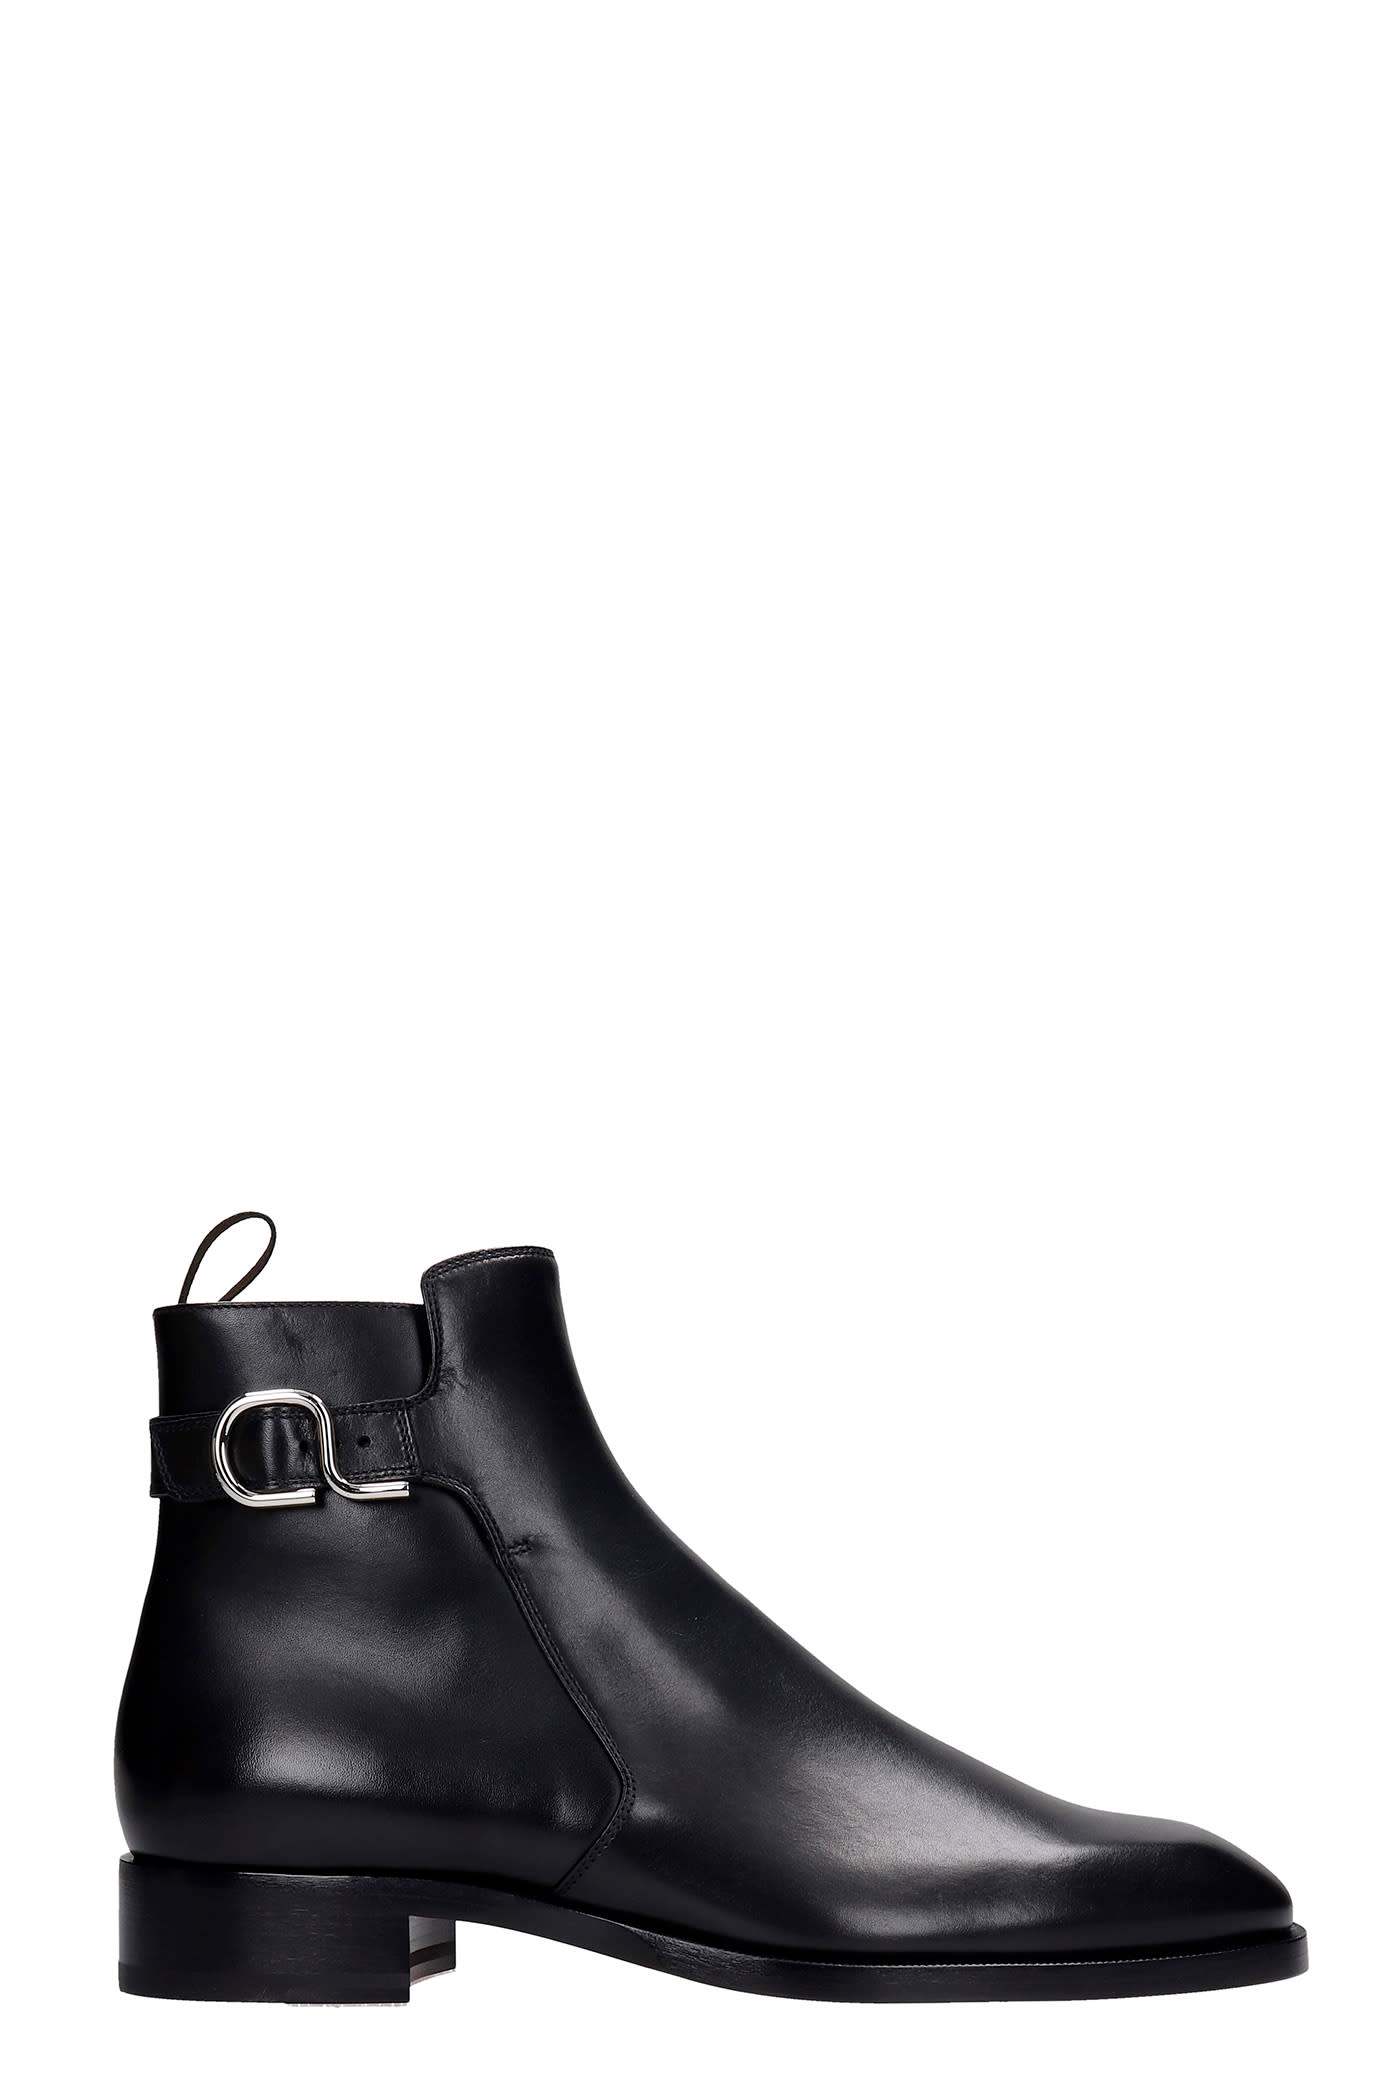 Christian Louboutin Leathers VALIDO LOW HEELS ANKLE BOOTS IN BLACK LEATHER